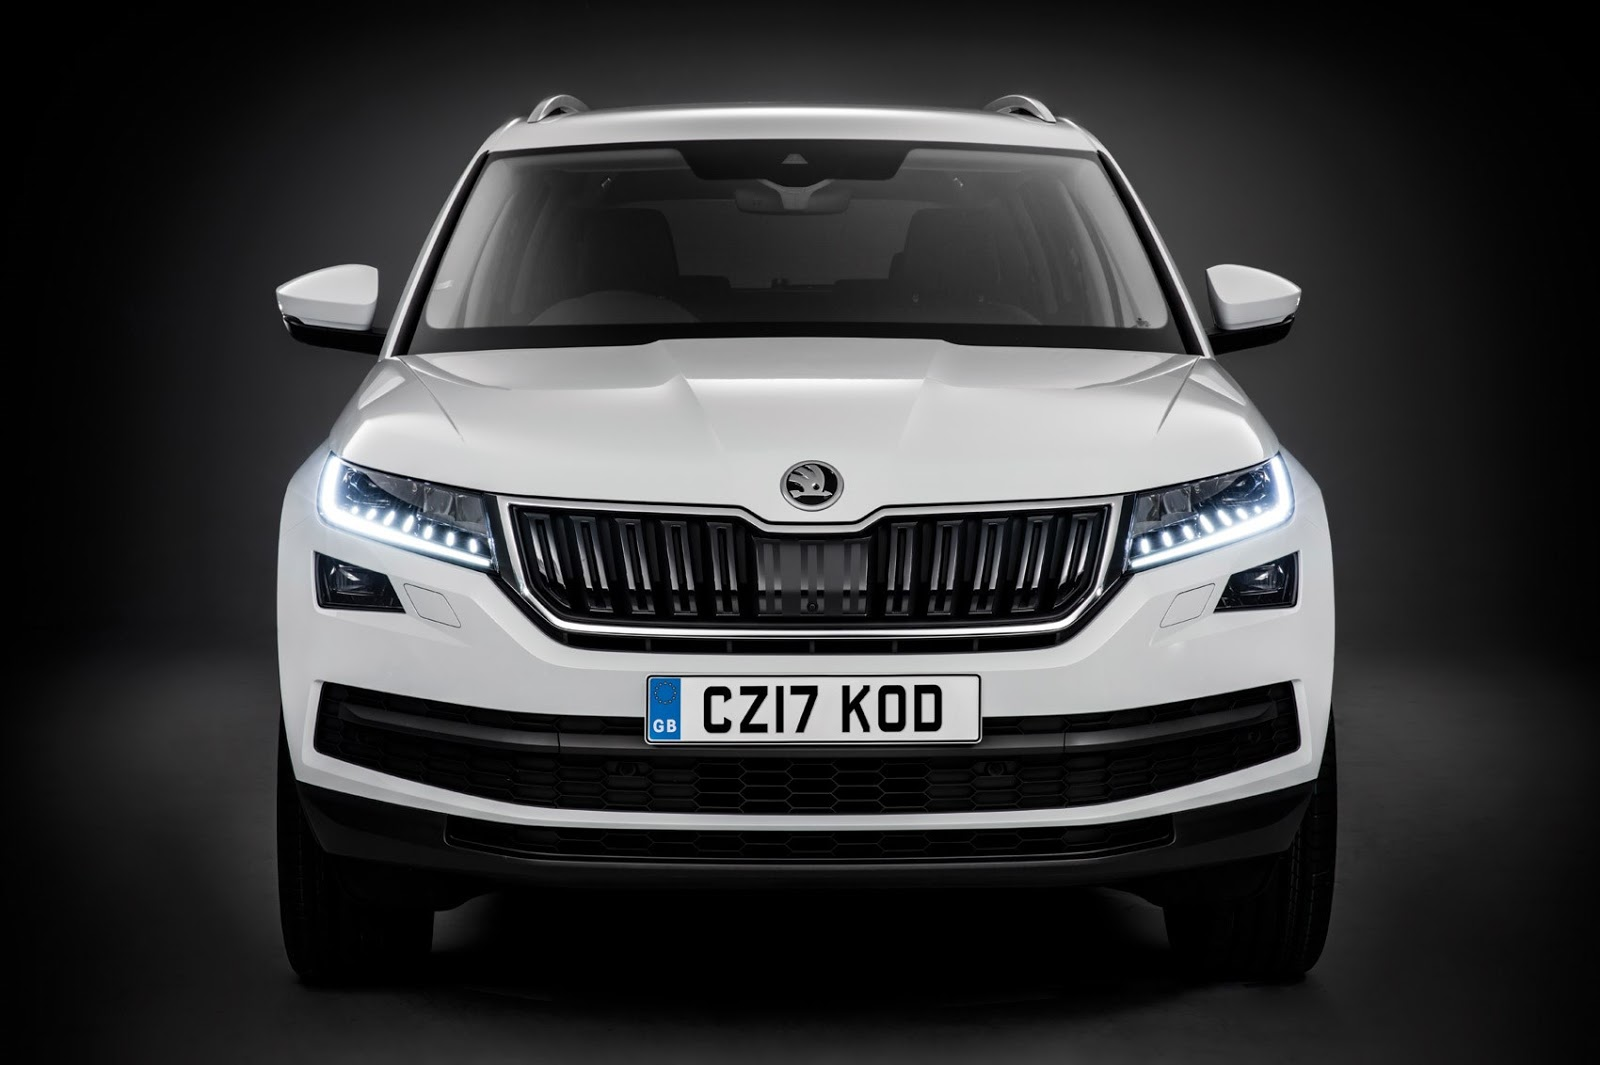 Skoda Kodiaq Price In India 2017 New Large Suv 2016 Pics And Images